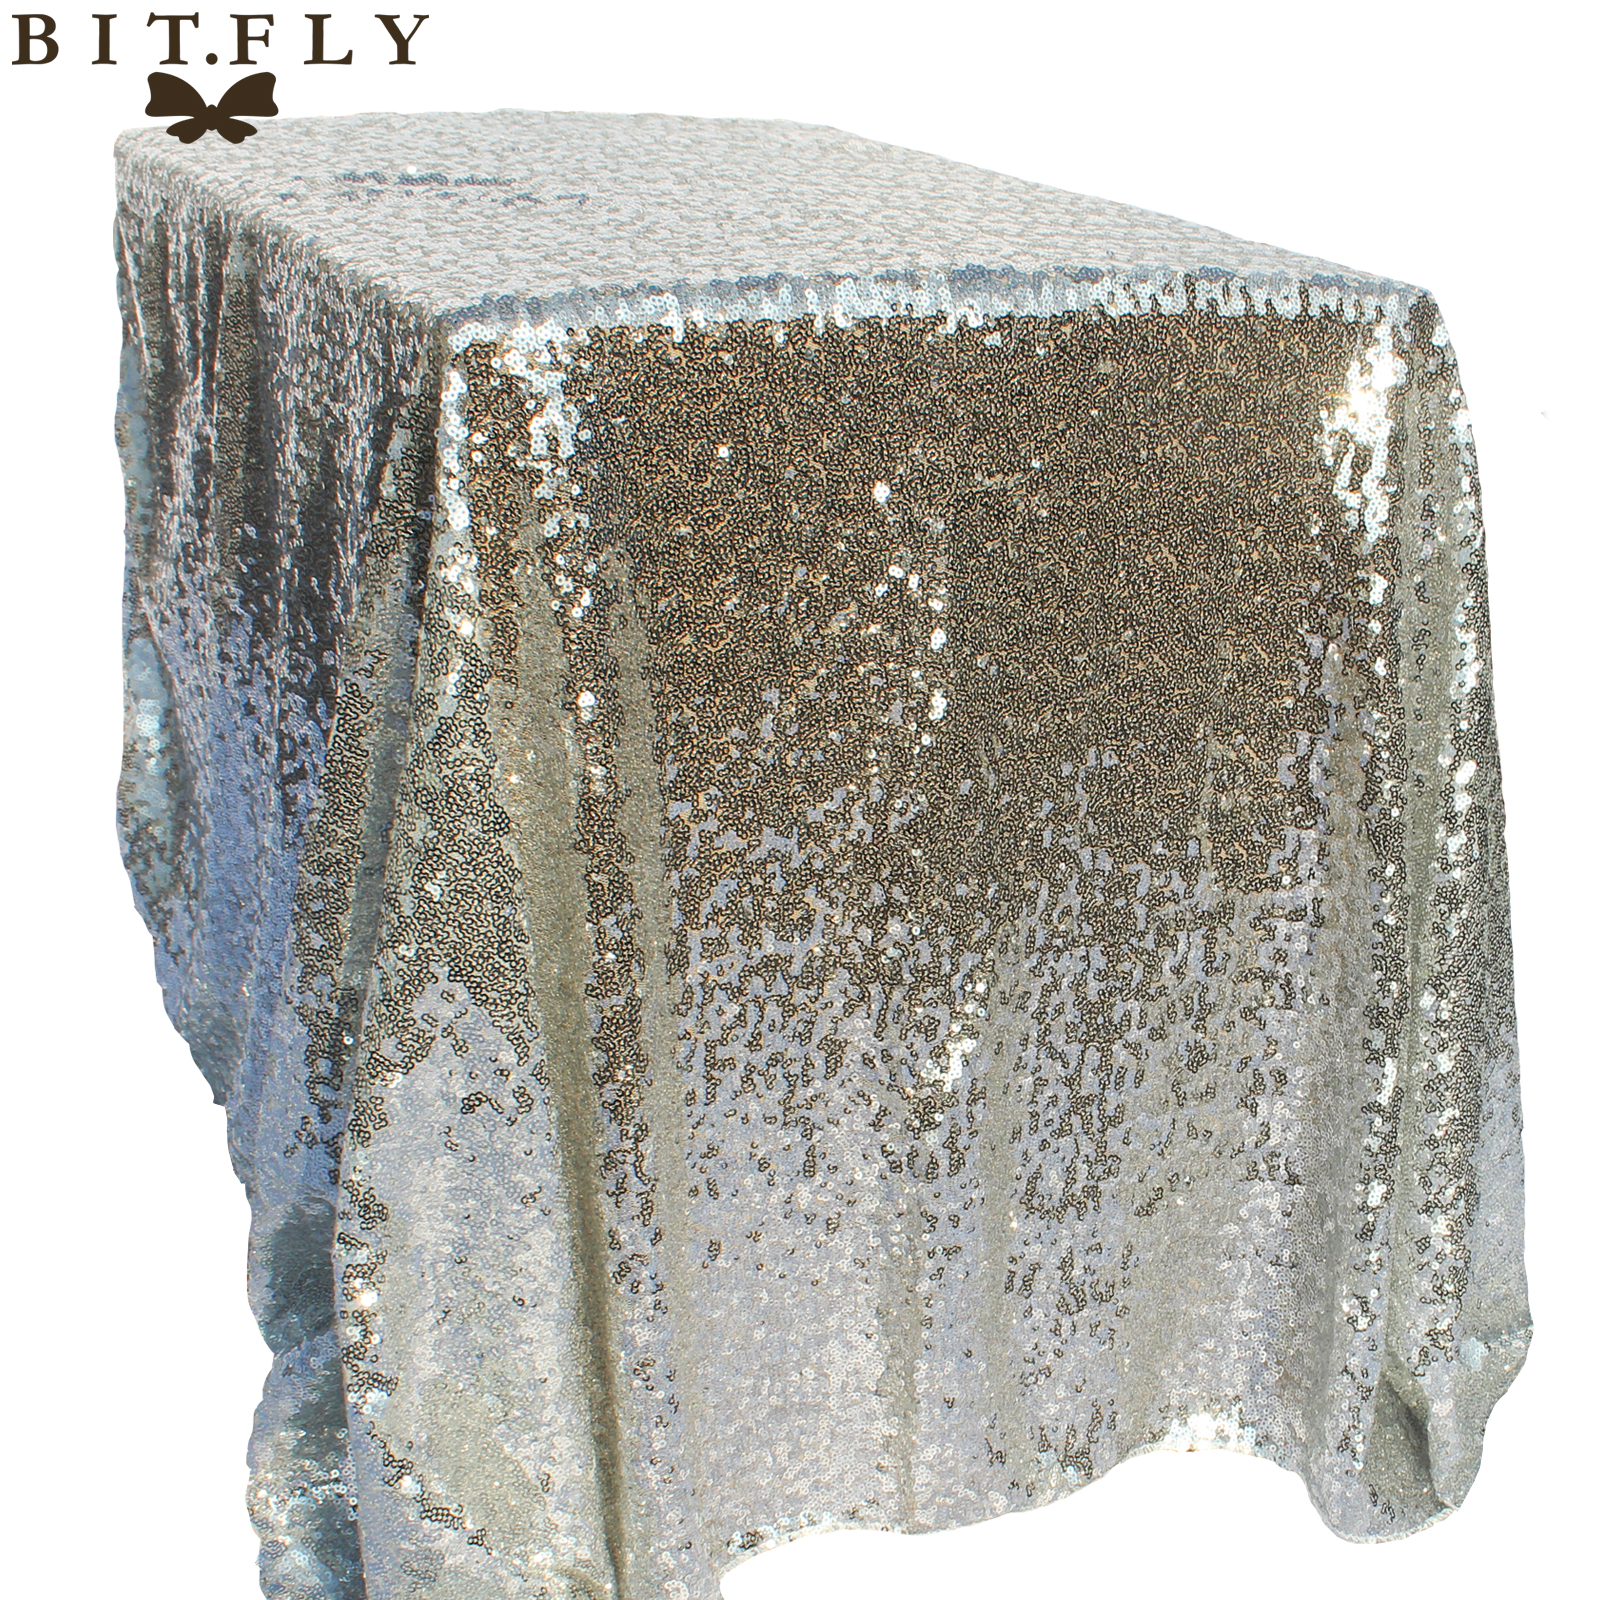 BITFLY 120x180cm Sparkling rose/Gold/Silver Embroidery Mesh Sequin Tablecloth Table Cover Overlay for Wedding/Party DecorationBITFLY 120x180cm Sparkling rose/Gold/Silver Embroidery Mesh Sequin Tablecloth Table Cover Overlay for Wedding/Party Decoration